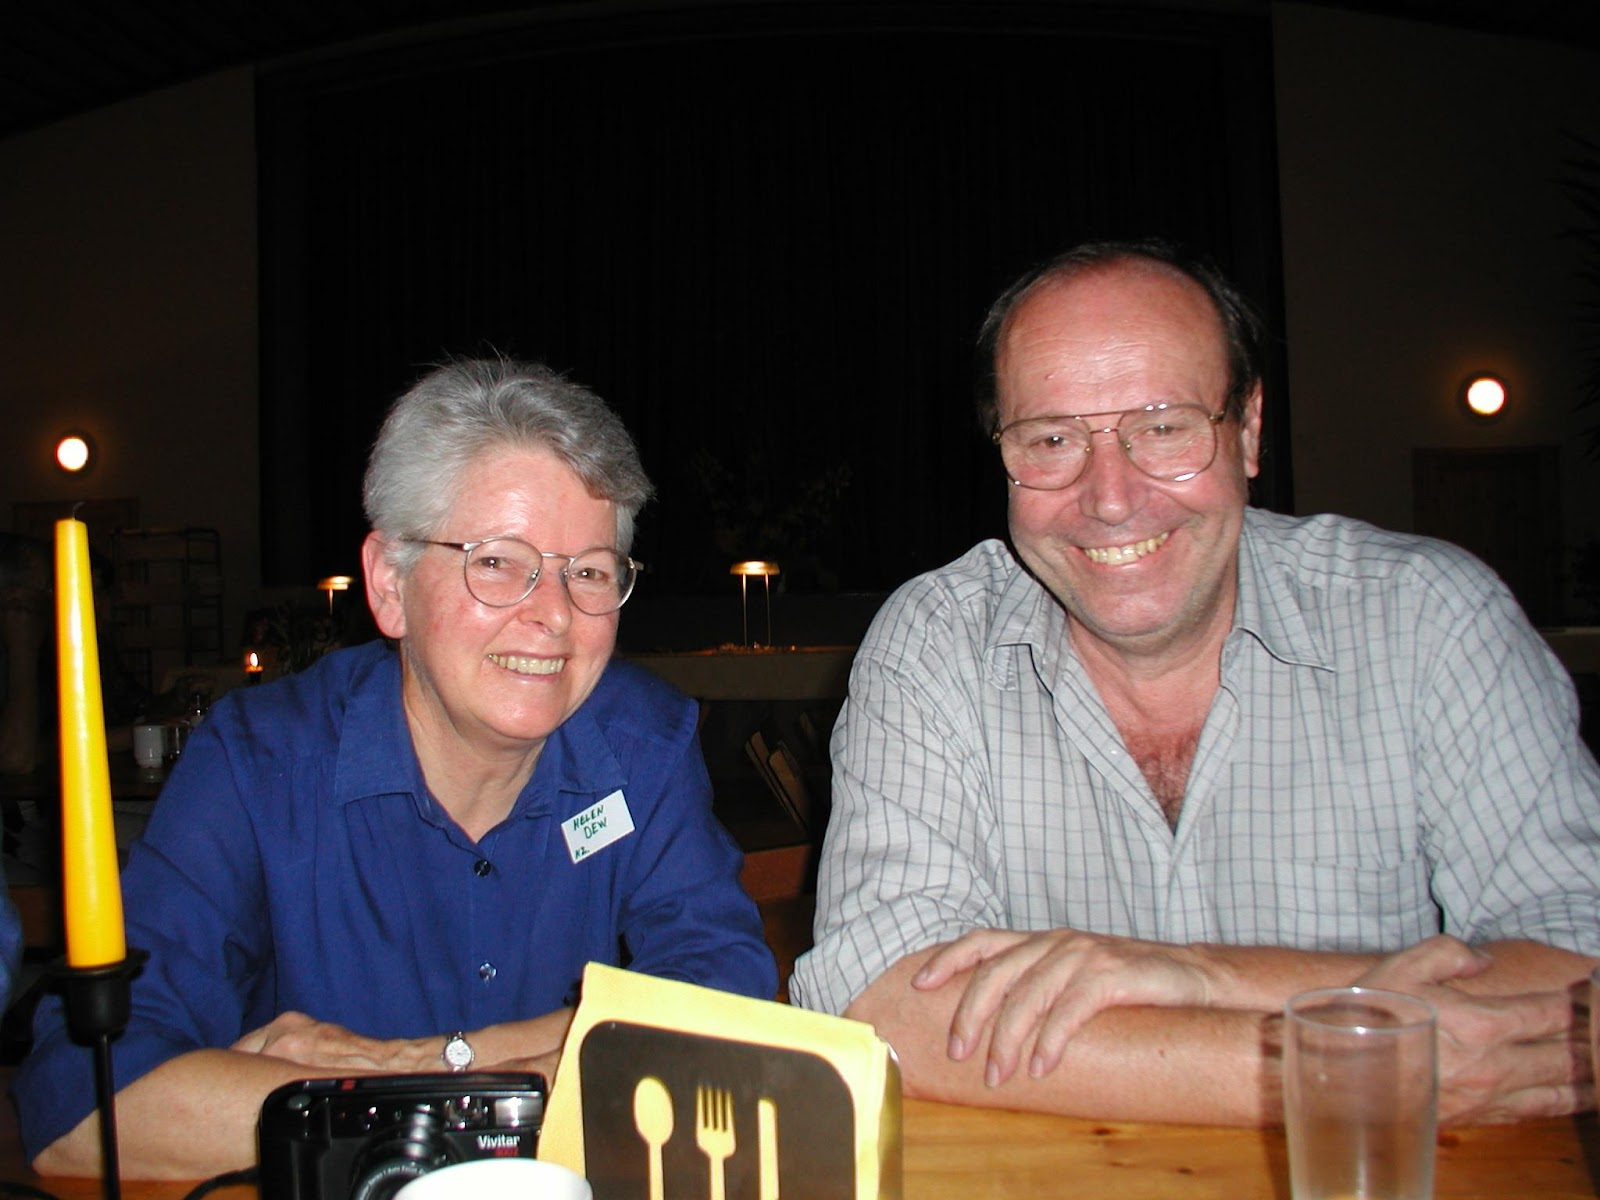 Helen Dew and Bernard Lietaer, 2003 in Steyerberg, Germany